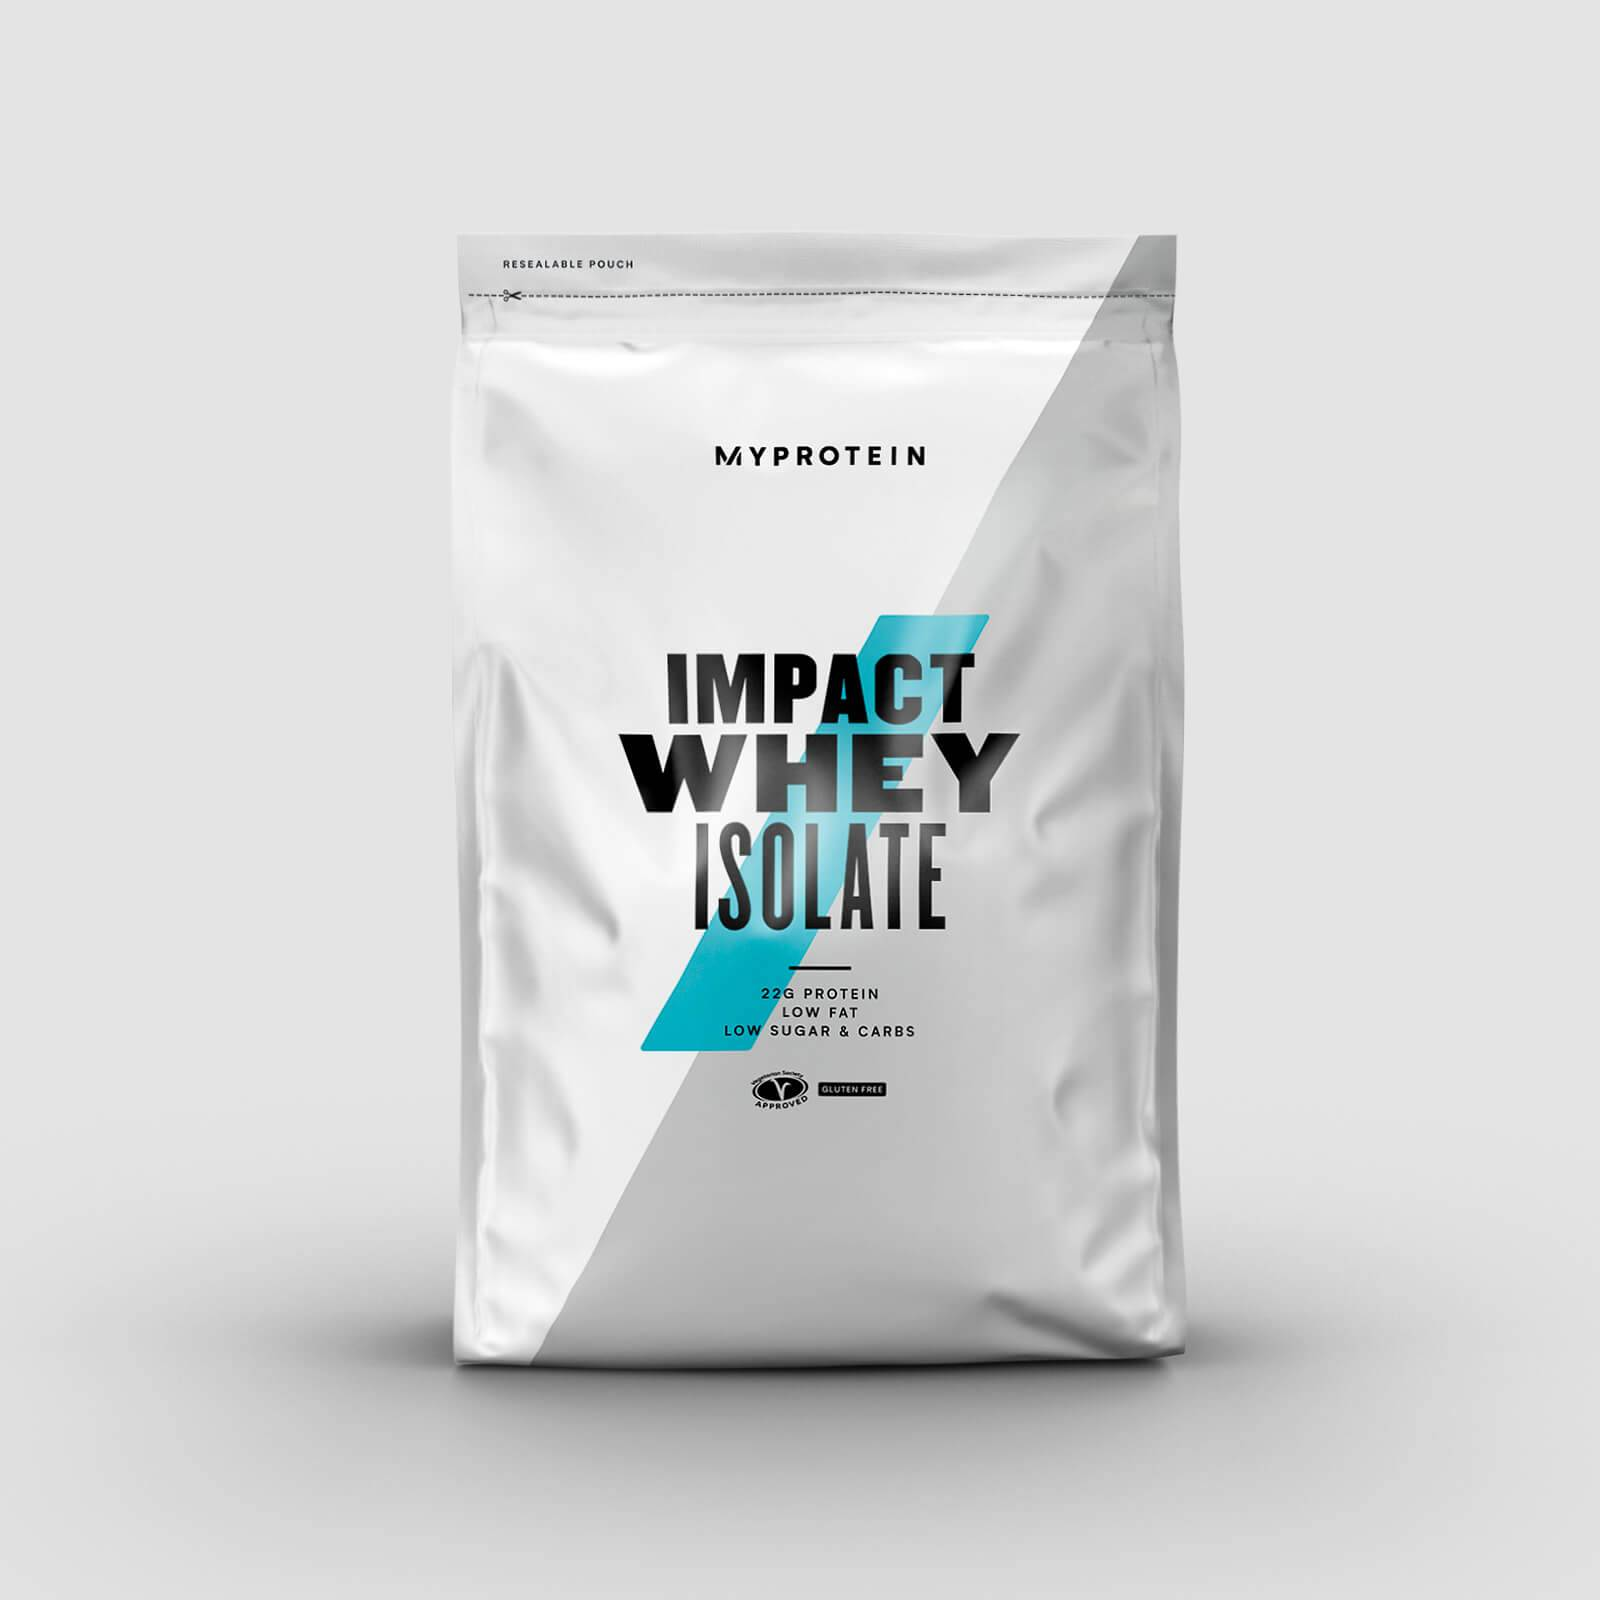 Myprotein Impact Whey Isolate - 2.5kg - New - Natural Vanilla